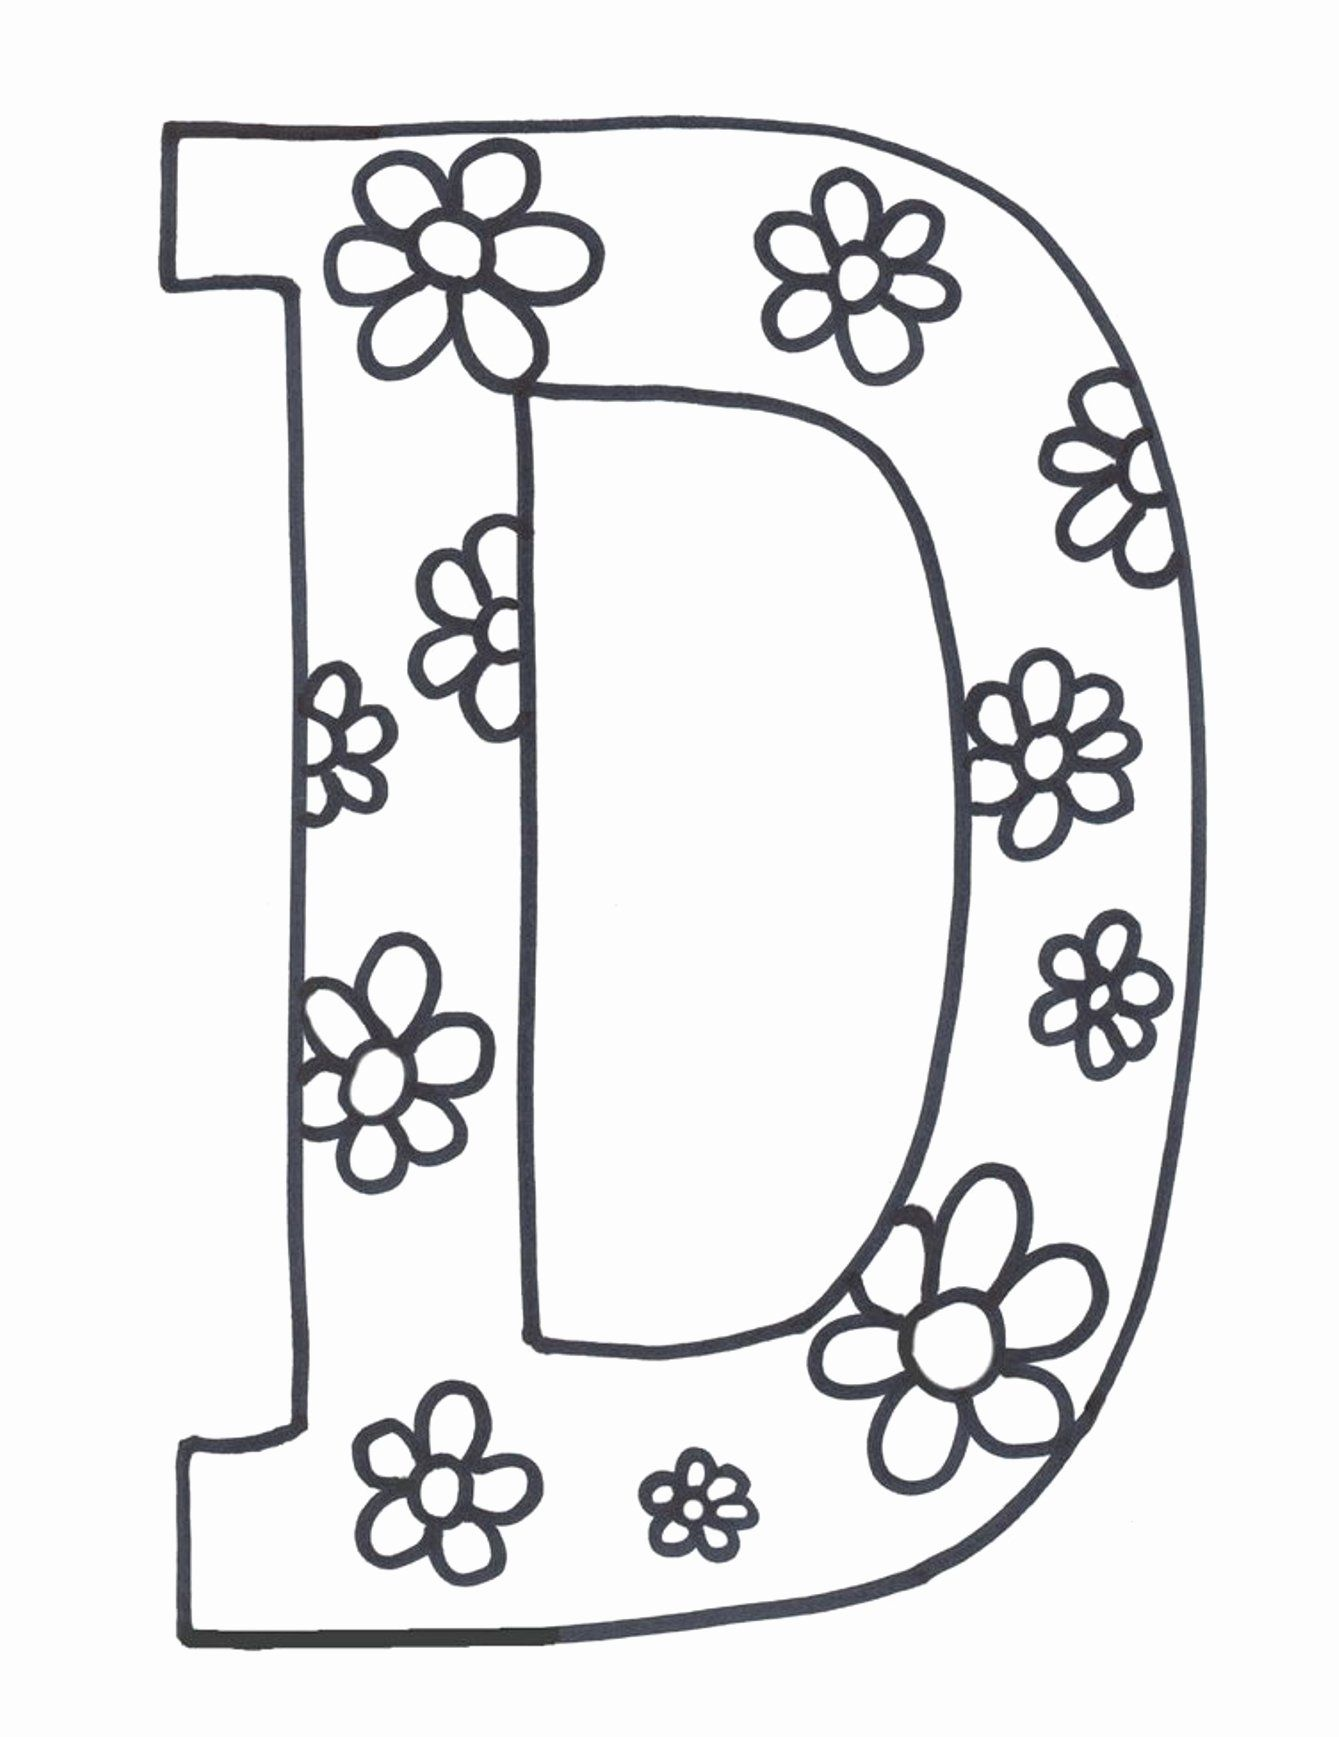 Coloring Pages Alphabet Letters Fresh Coloring Free Printable Alphabetg Pages For Adults Letter A Coloring Pages Alphabet Coloring Pages Abc Coloring Pages